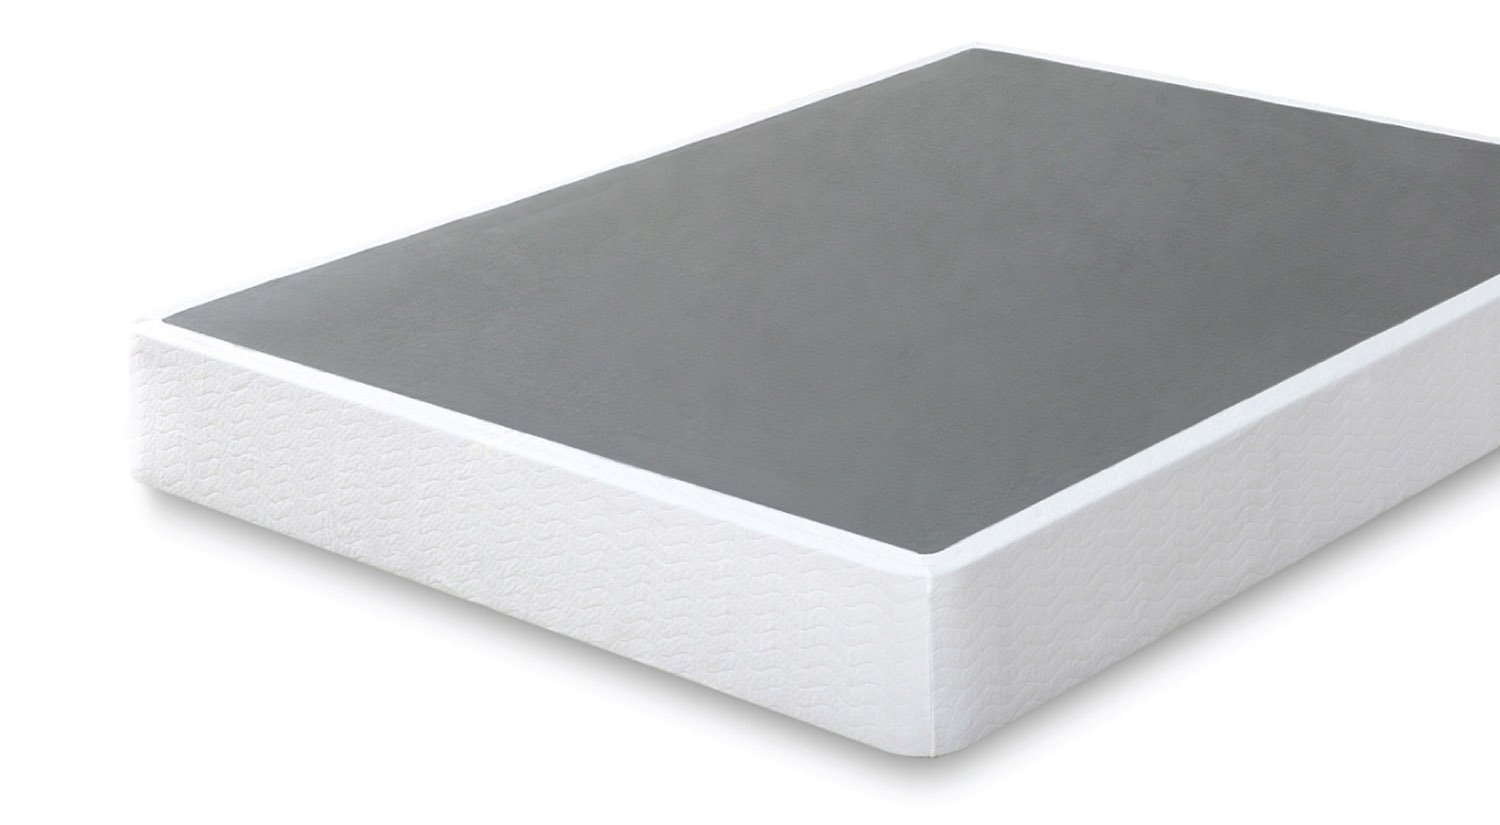 Sleep Well With Zinus Smart Box Spring